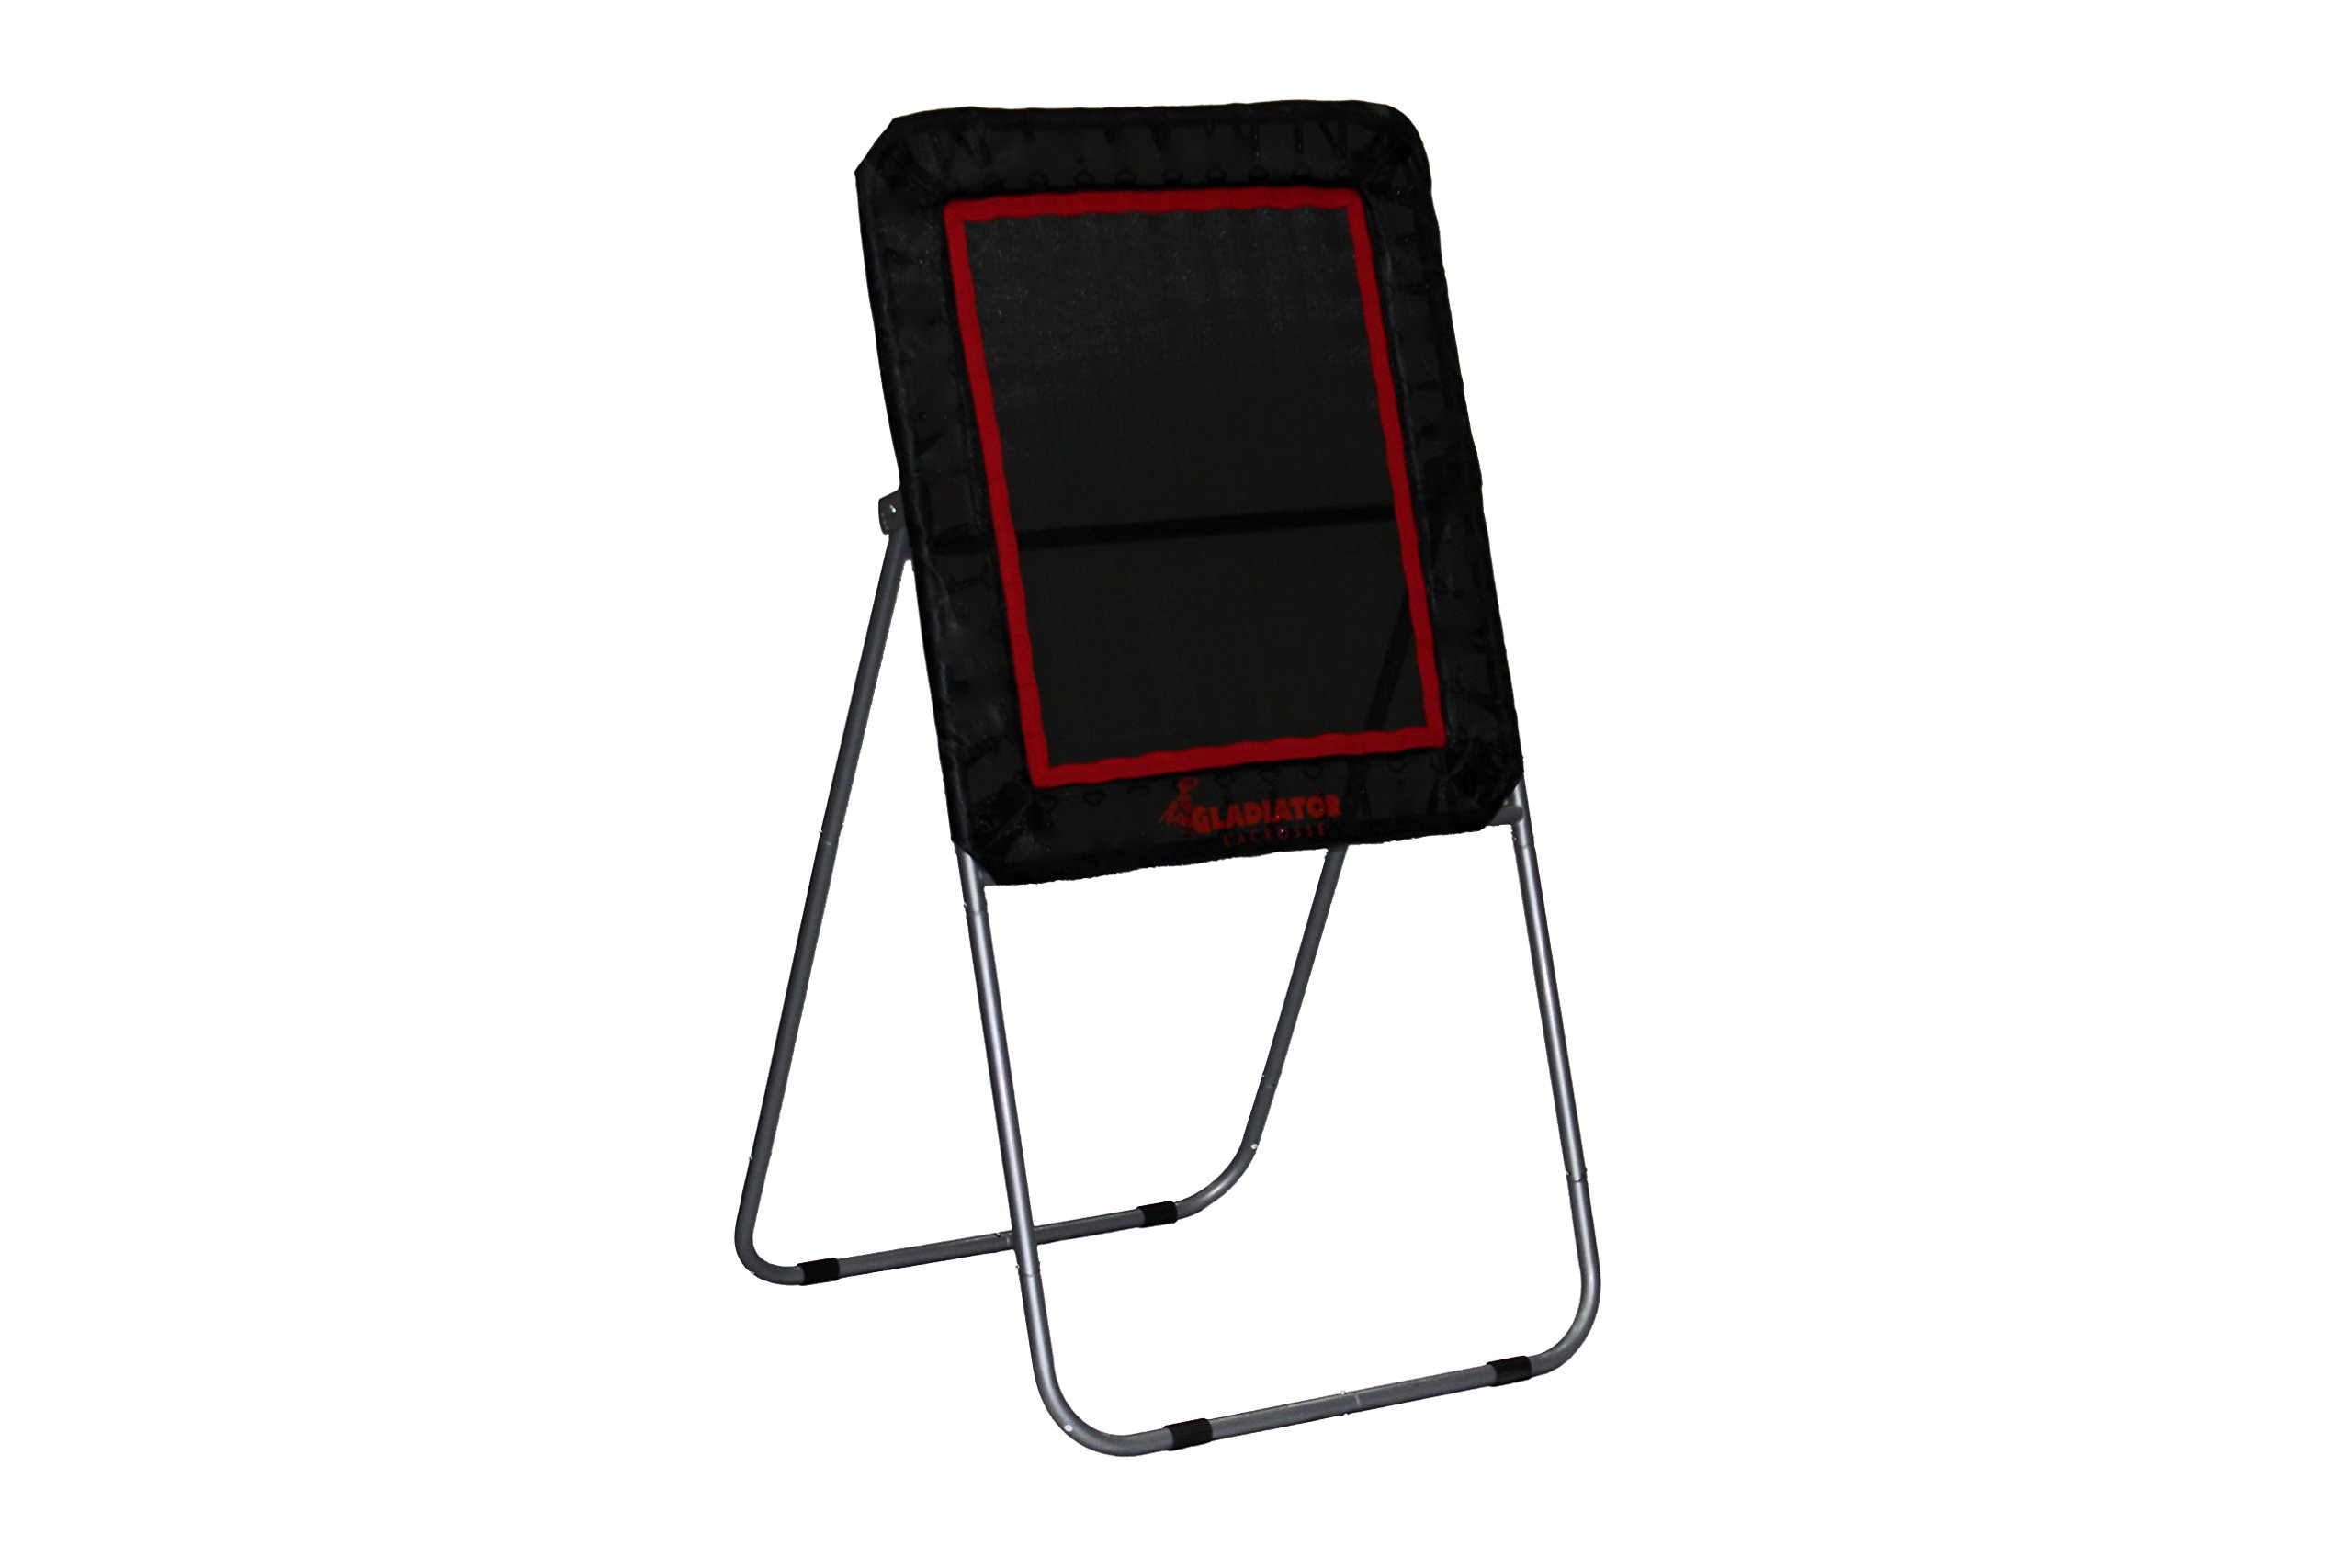 Gladiator Lacrosse Professional Bounce Pitch Back / Rebounder (Black) by Gladiator Lacrosse